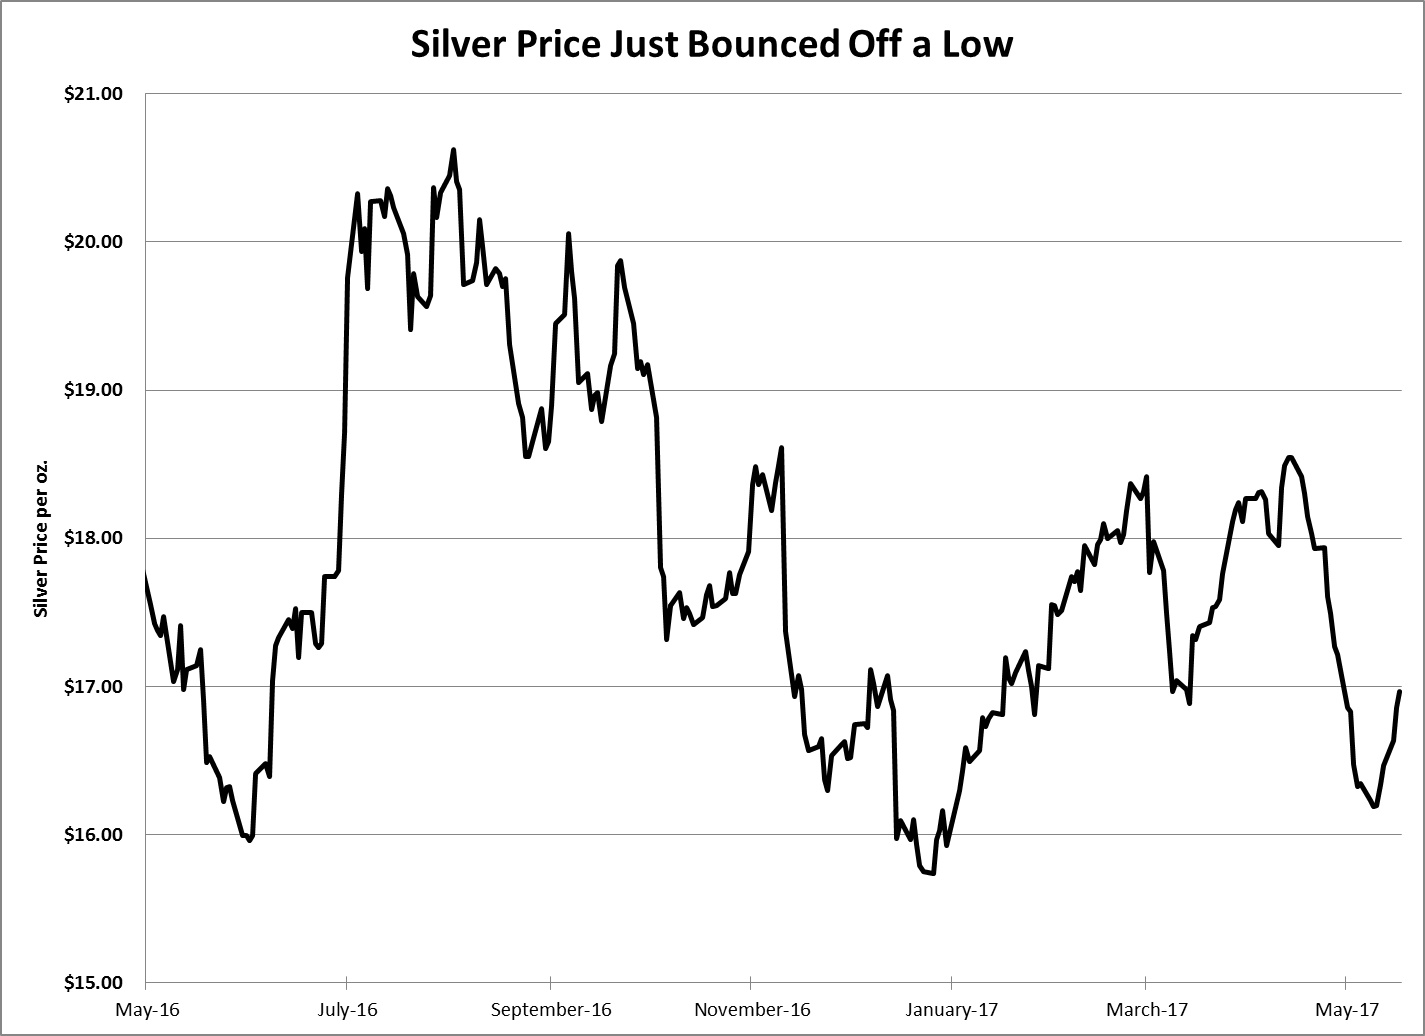 As I said in the first article I wrote for Winning Investor Daily, its price volatility makes silver a great metal for speculation.